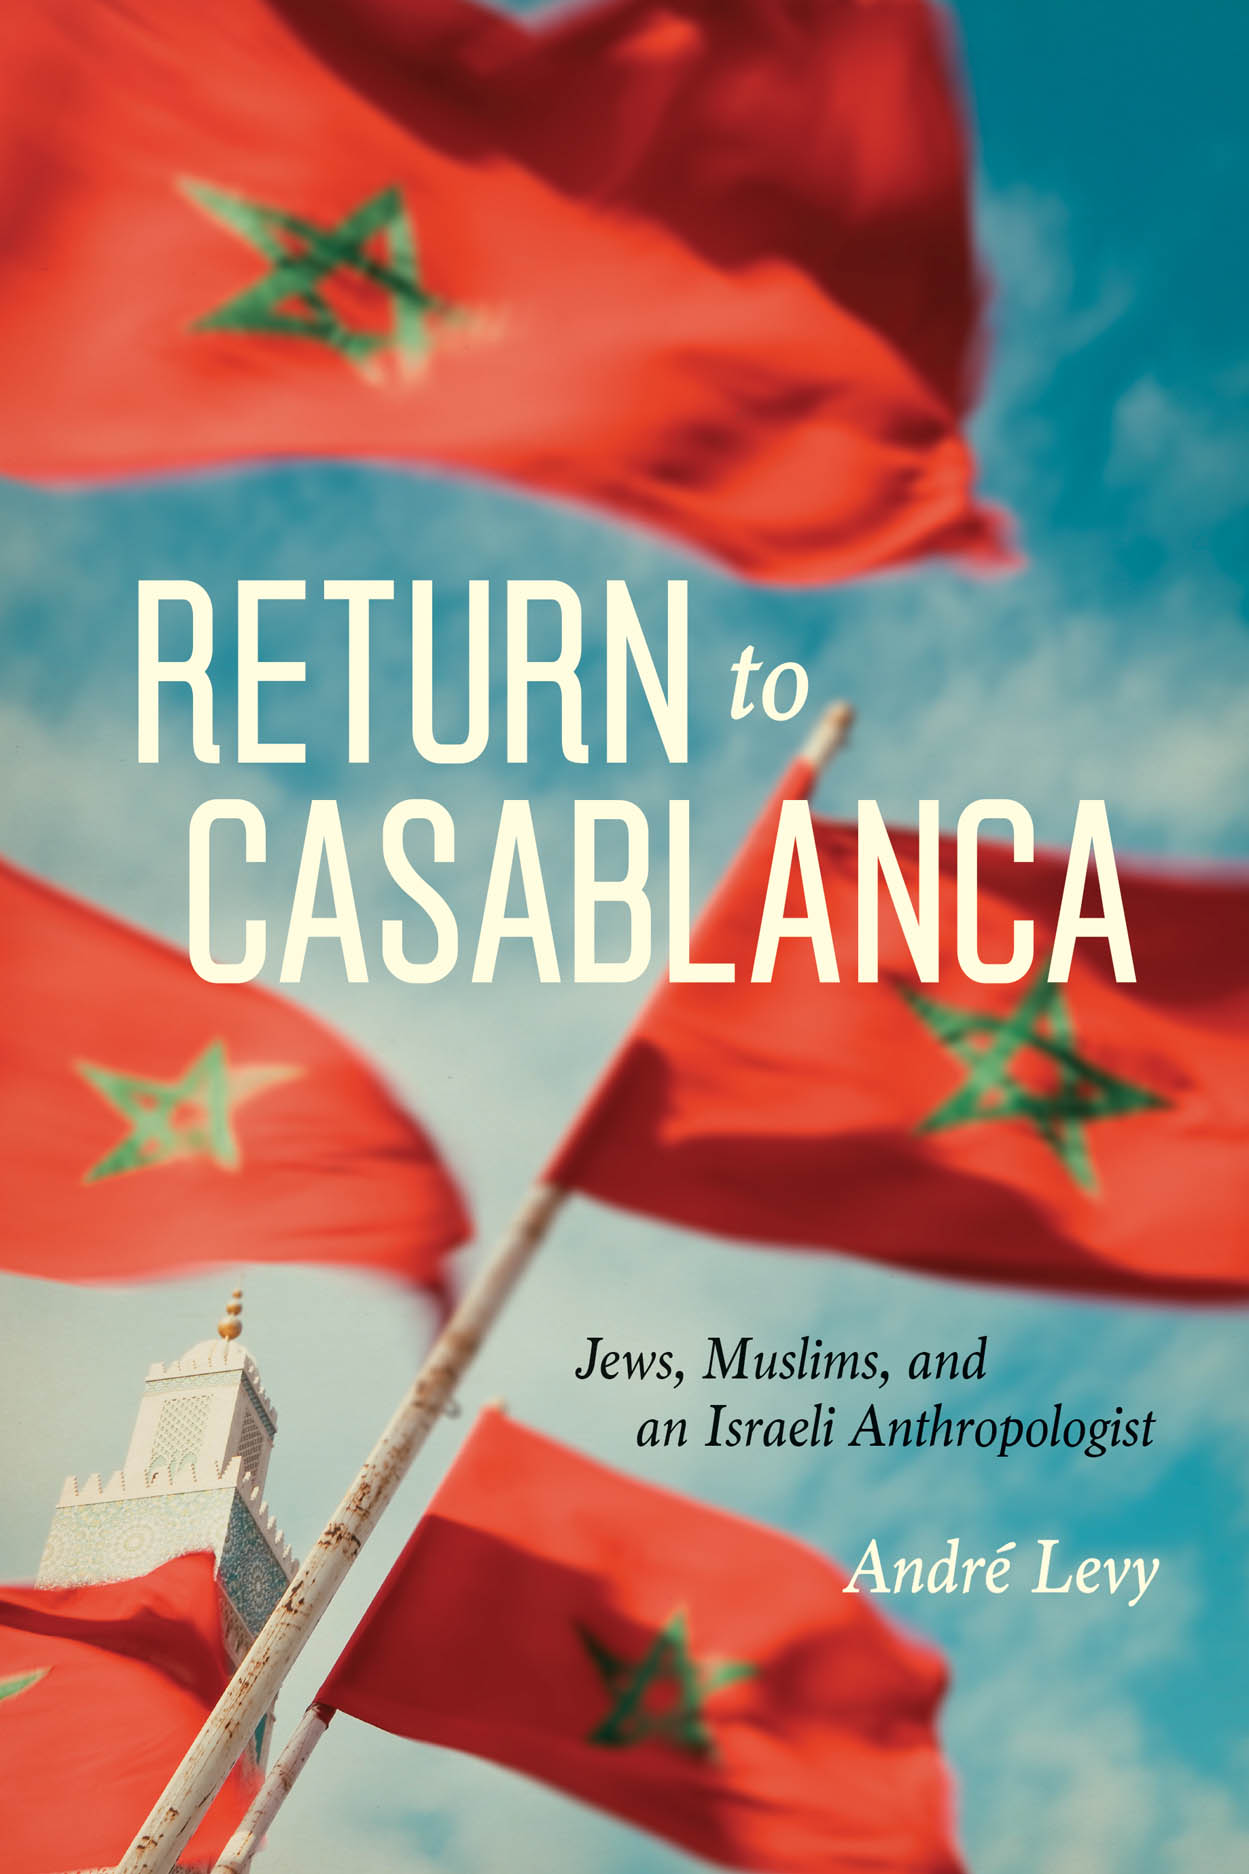 Return to Casablanca